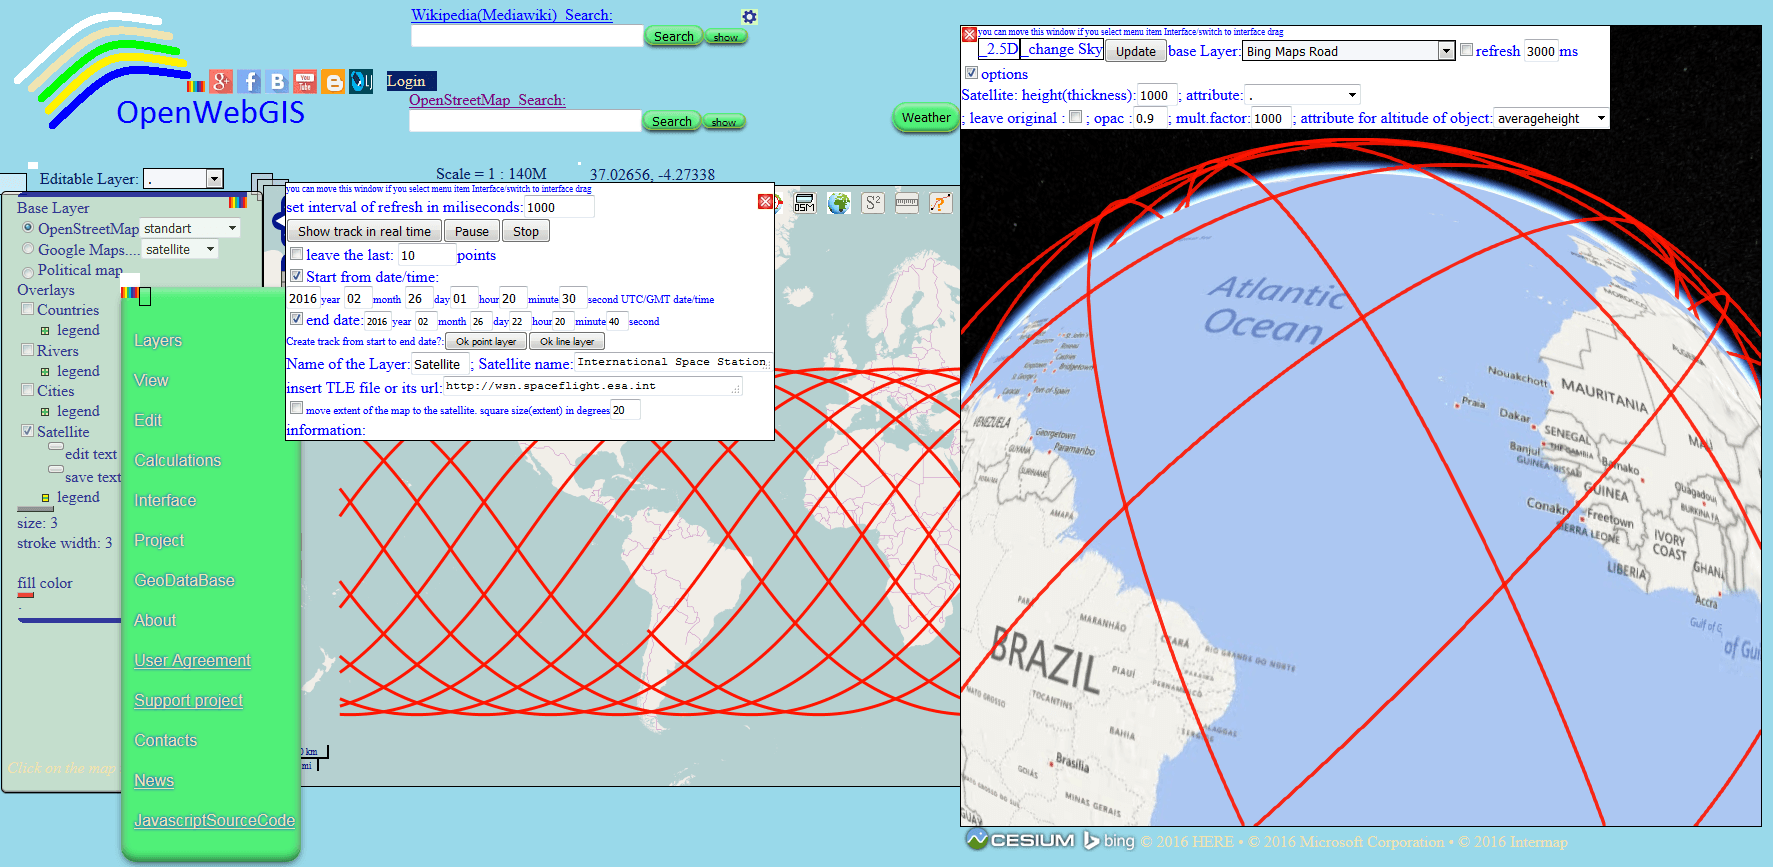 Figure 2 - 2D and 3D tracks of International Space Station from 2016-02-26T01:20:30 to 2016-02-26T22:20:40 (UTC/GMT date in a format according to ISO8601)